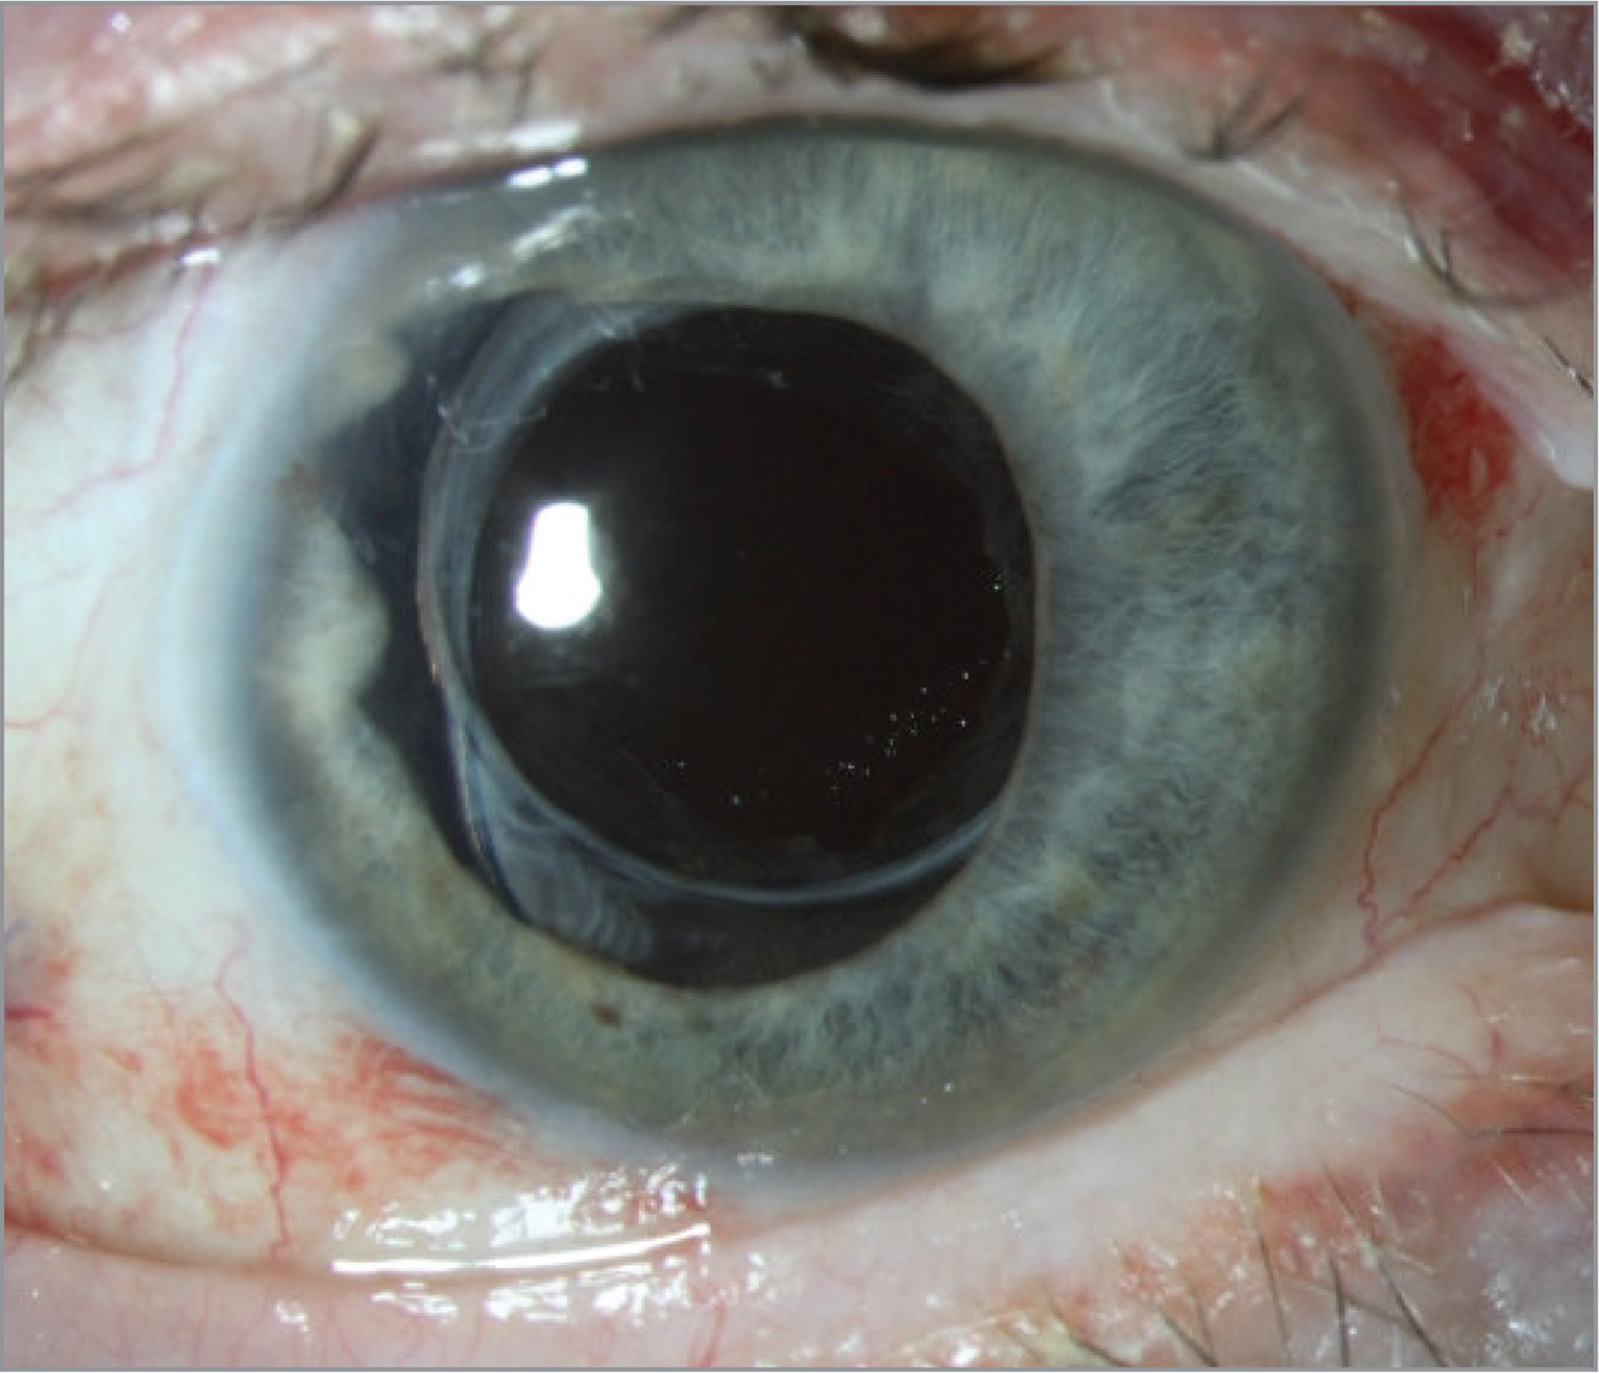 Slit-lamp photograph of the right eye showing clearance of the visual axis at the postoperative month 1 visit.